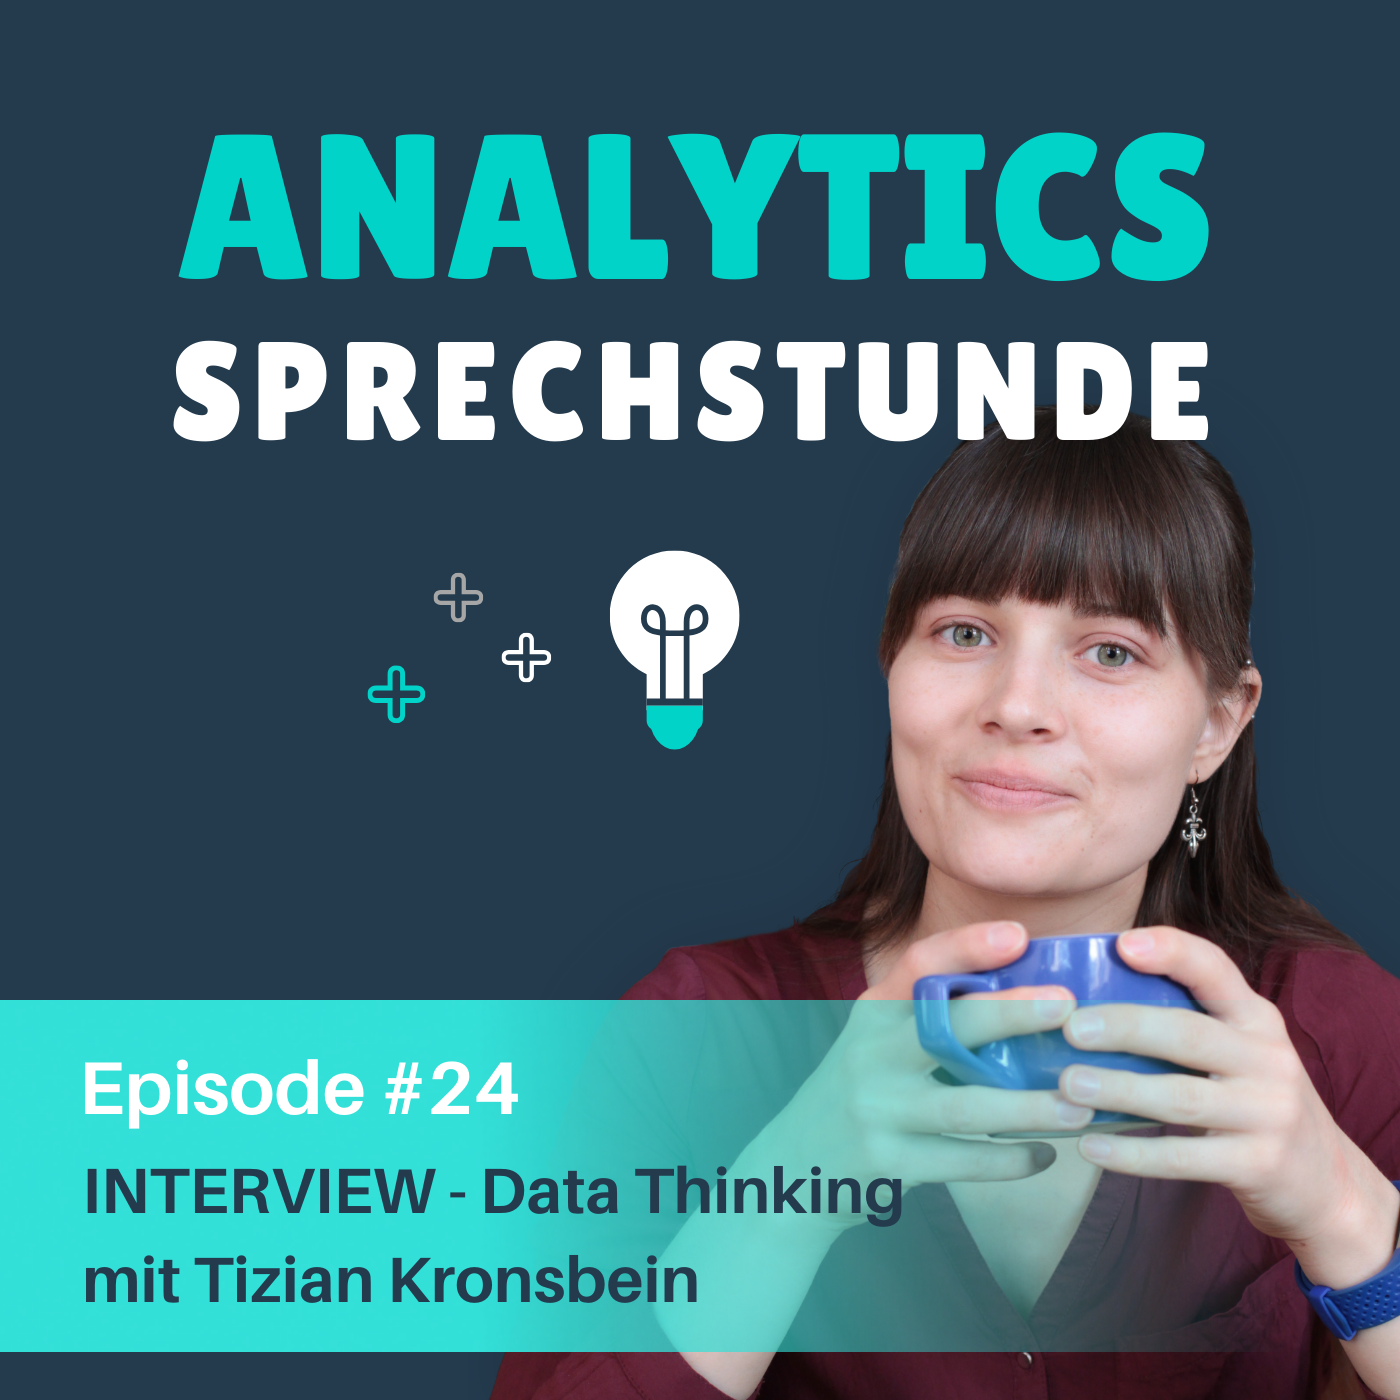 Analytics-Sprechstunde-Episode-24 Data Thinking Interview mit Tizian Kronsbein